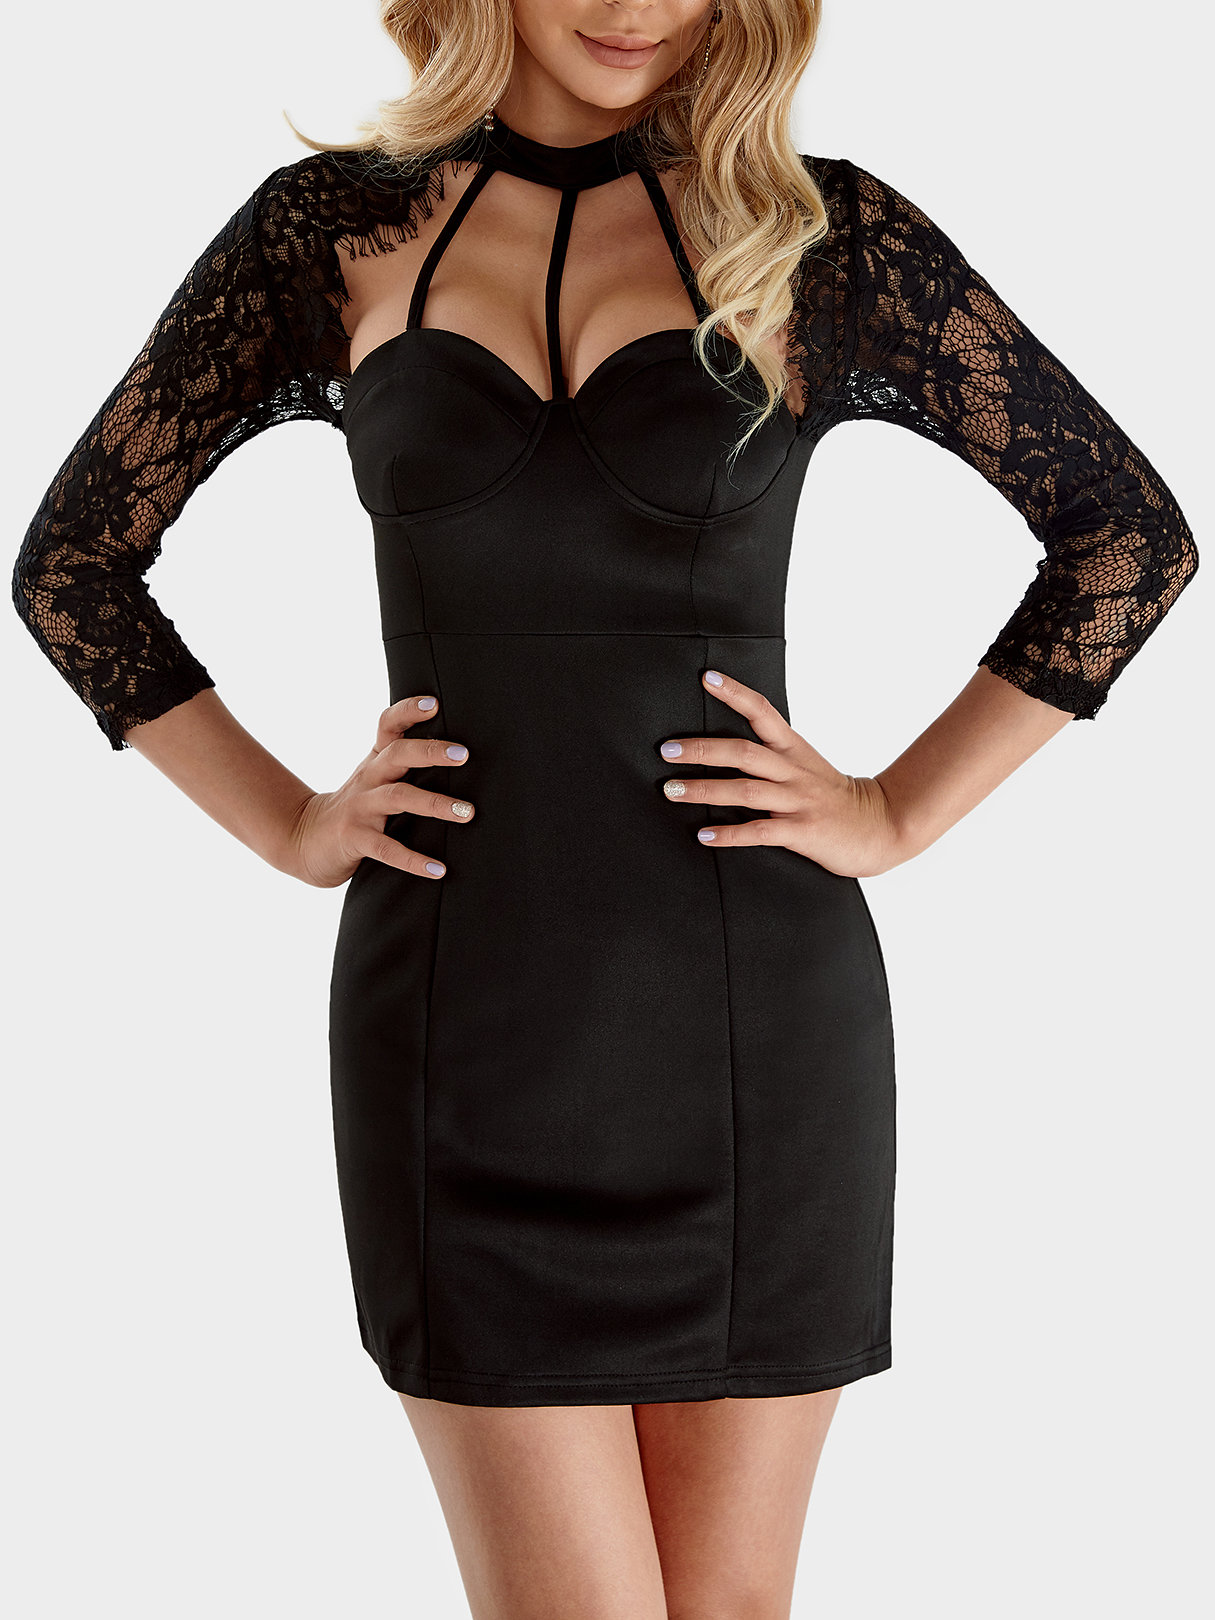 Black Lace Detail Long Sleeves Mini Dresses with Cut Out Design zip back fit and flared plaid dress